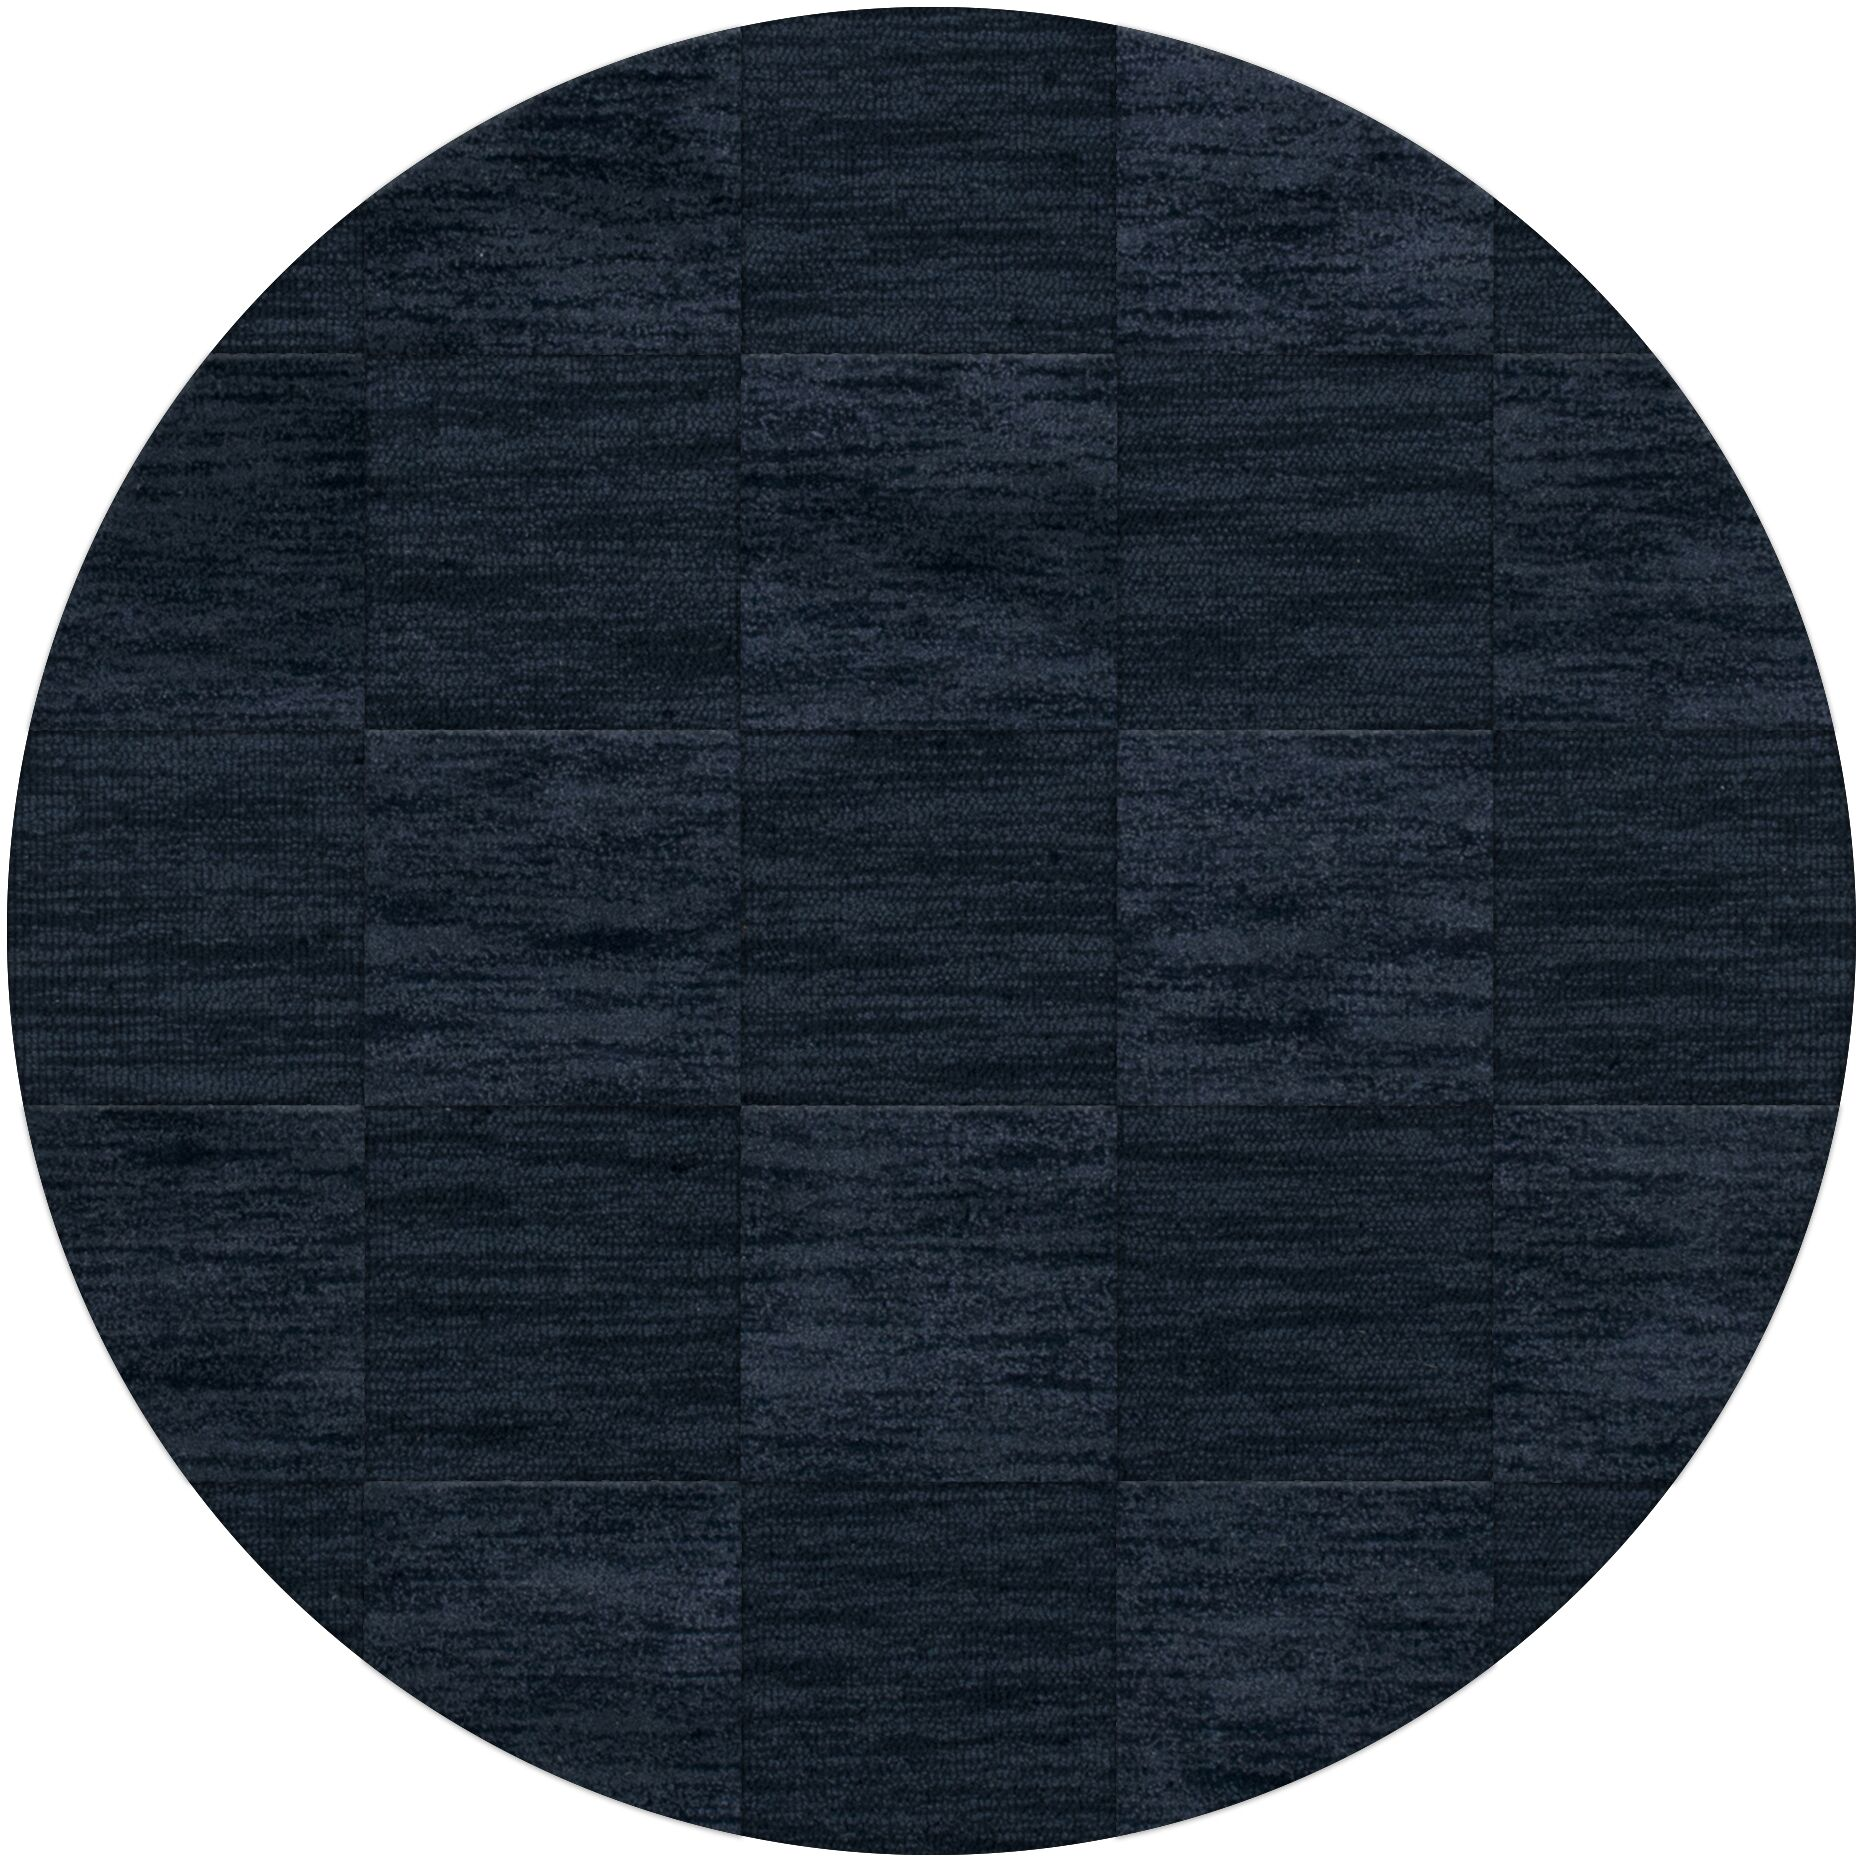 Dover Tufted Wool Navy Area Rug Rug Size: Round 12'